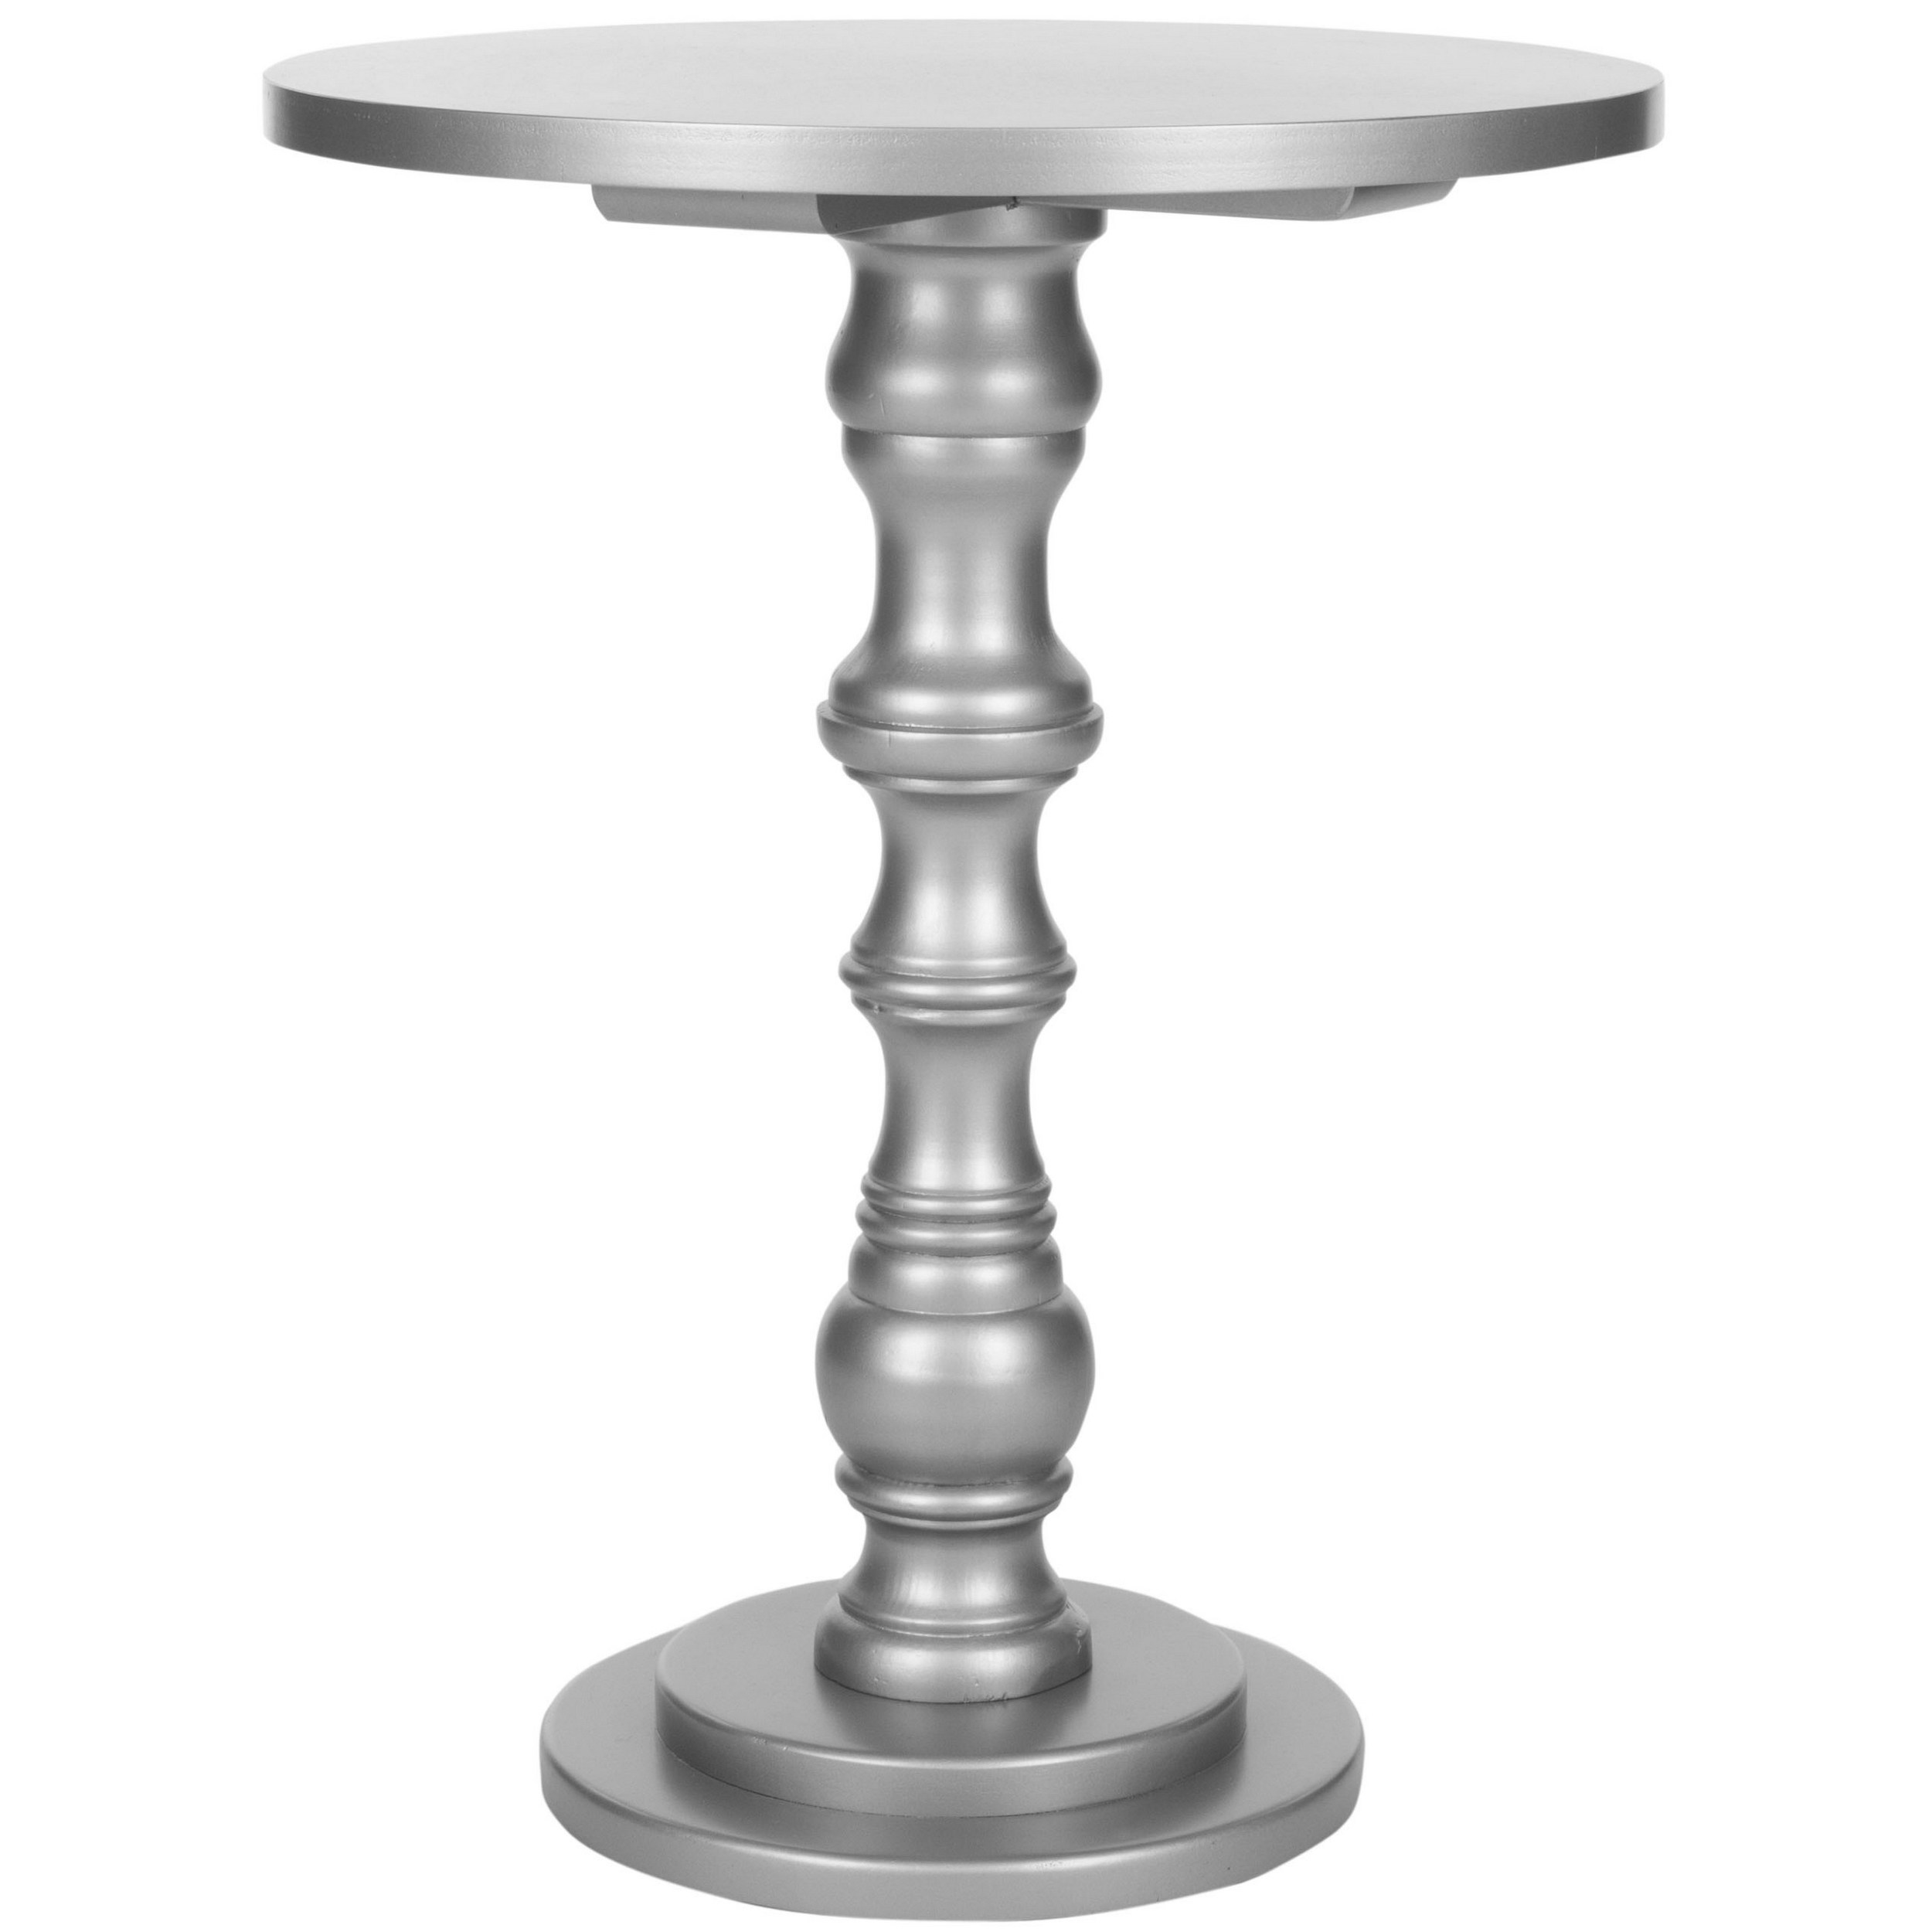 safavieh greta silver accent table free shipping today black wood side industrial end with drawer decorative chairs for living room essentials white outdoor chair umbrella weights